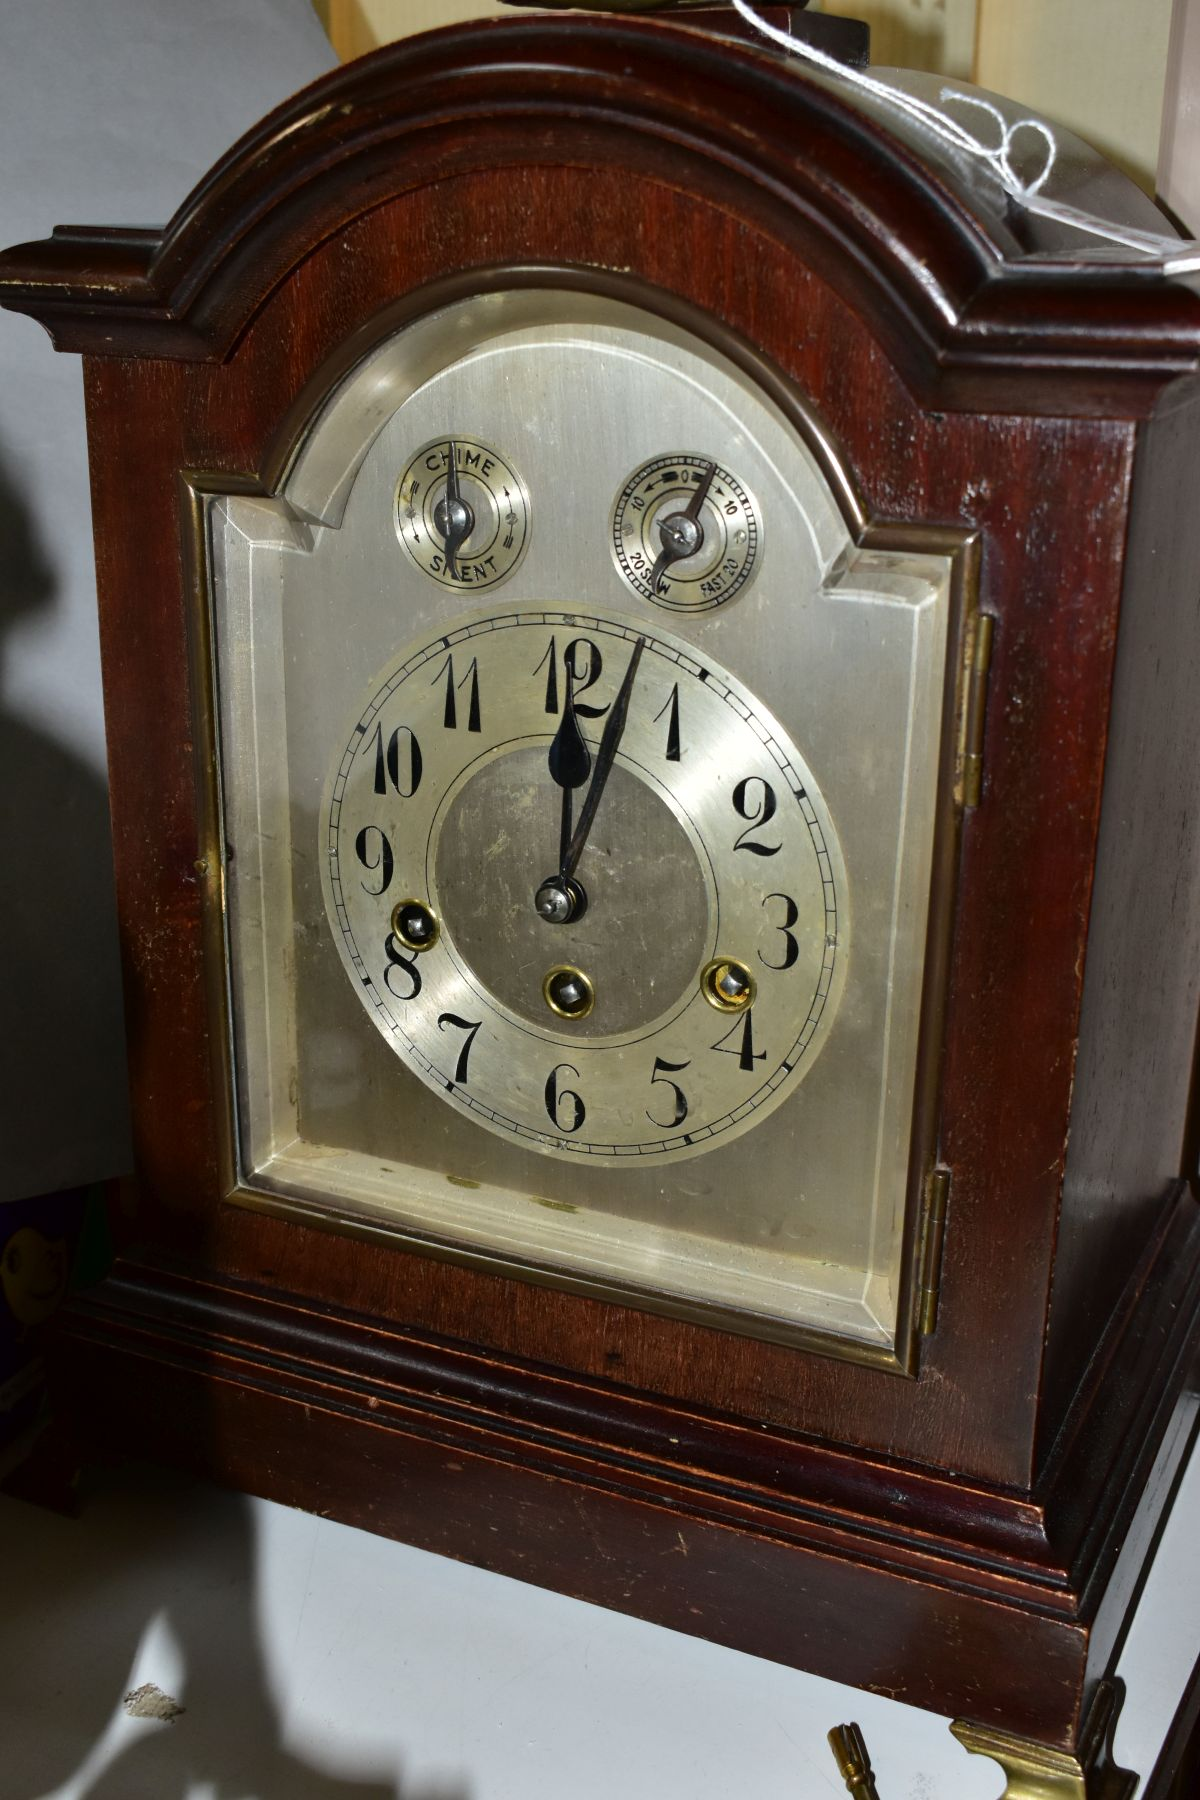 AN EARLY 2OTH CENTURY MAHOGANY STAINED GEORGE III STYLE BRACKET CLOCK, silvered dial with Arabic - Image 2 of 5